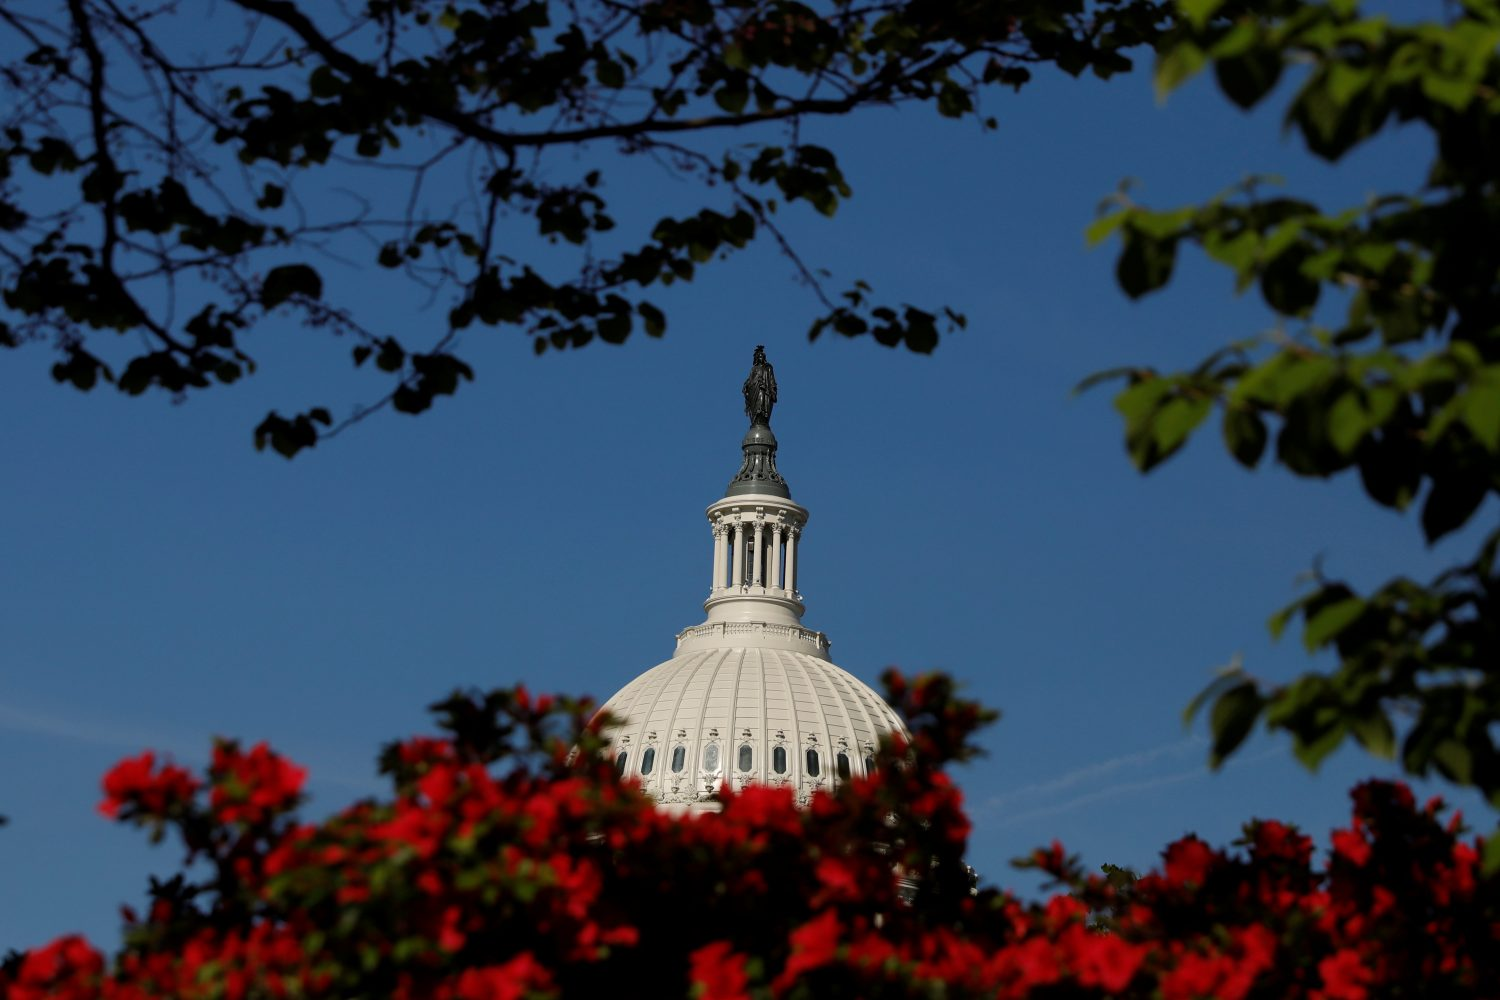 FILE PHOTO: The U.S. Capitol building is seen through flowers in Washington, U.S., April 23, 2019. REUTERS/Shannon Stapleton